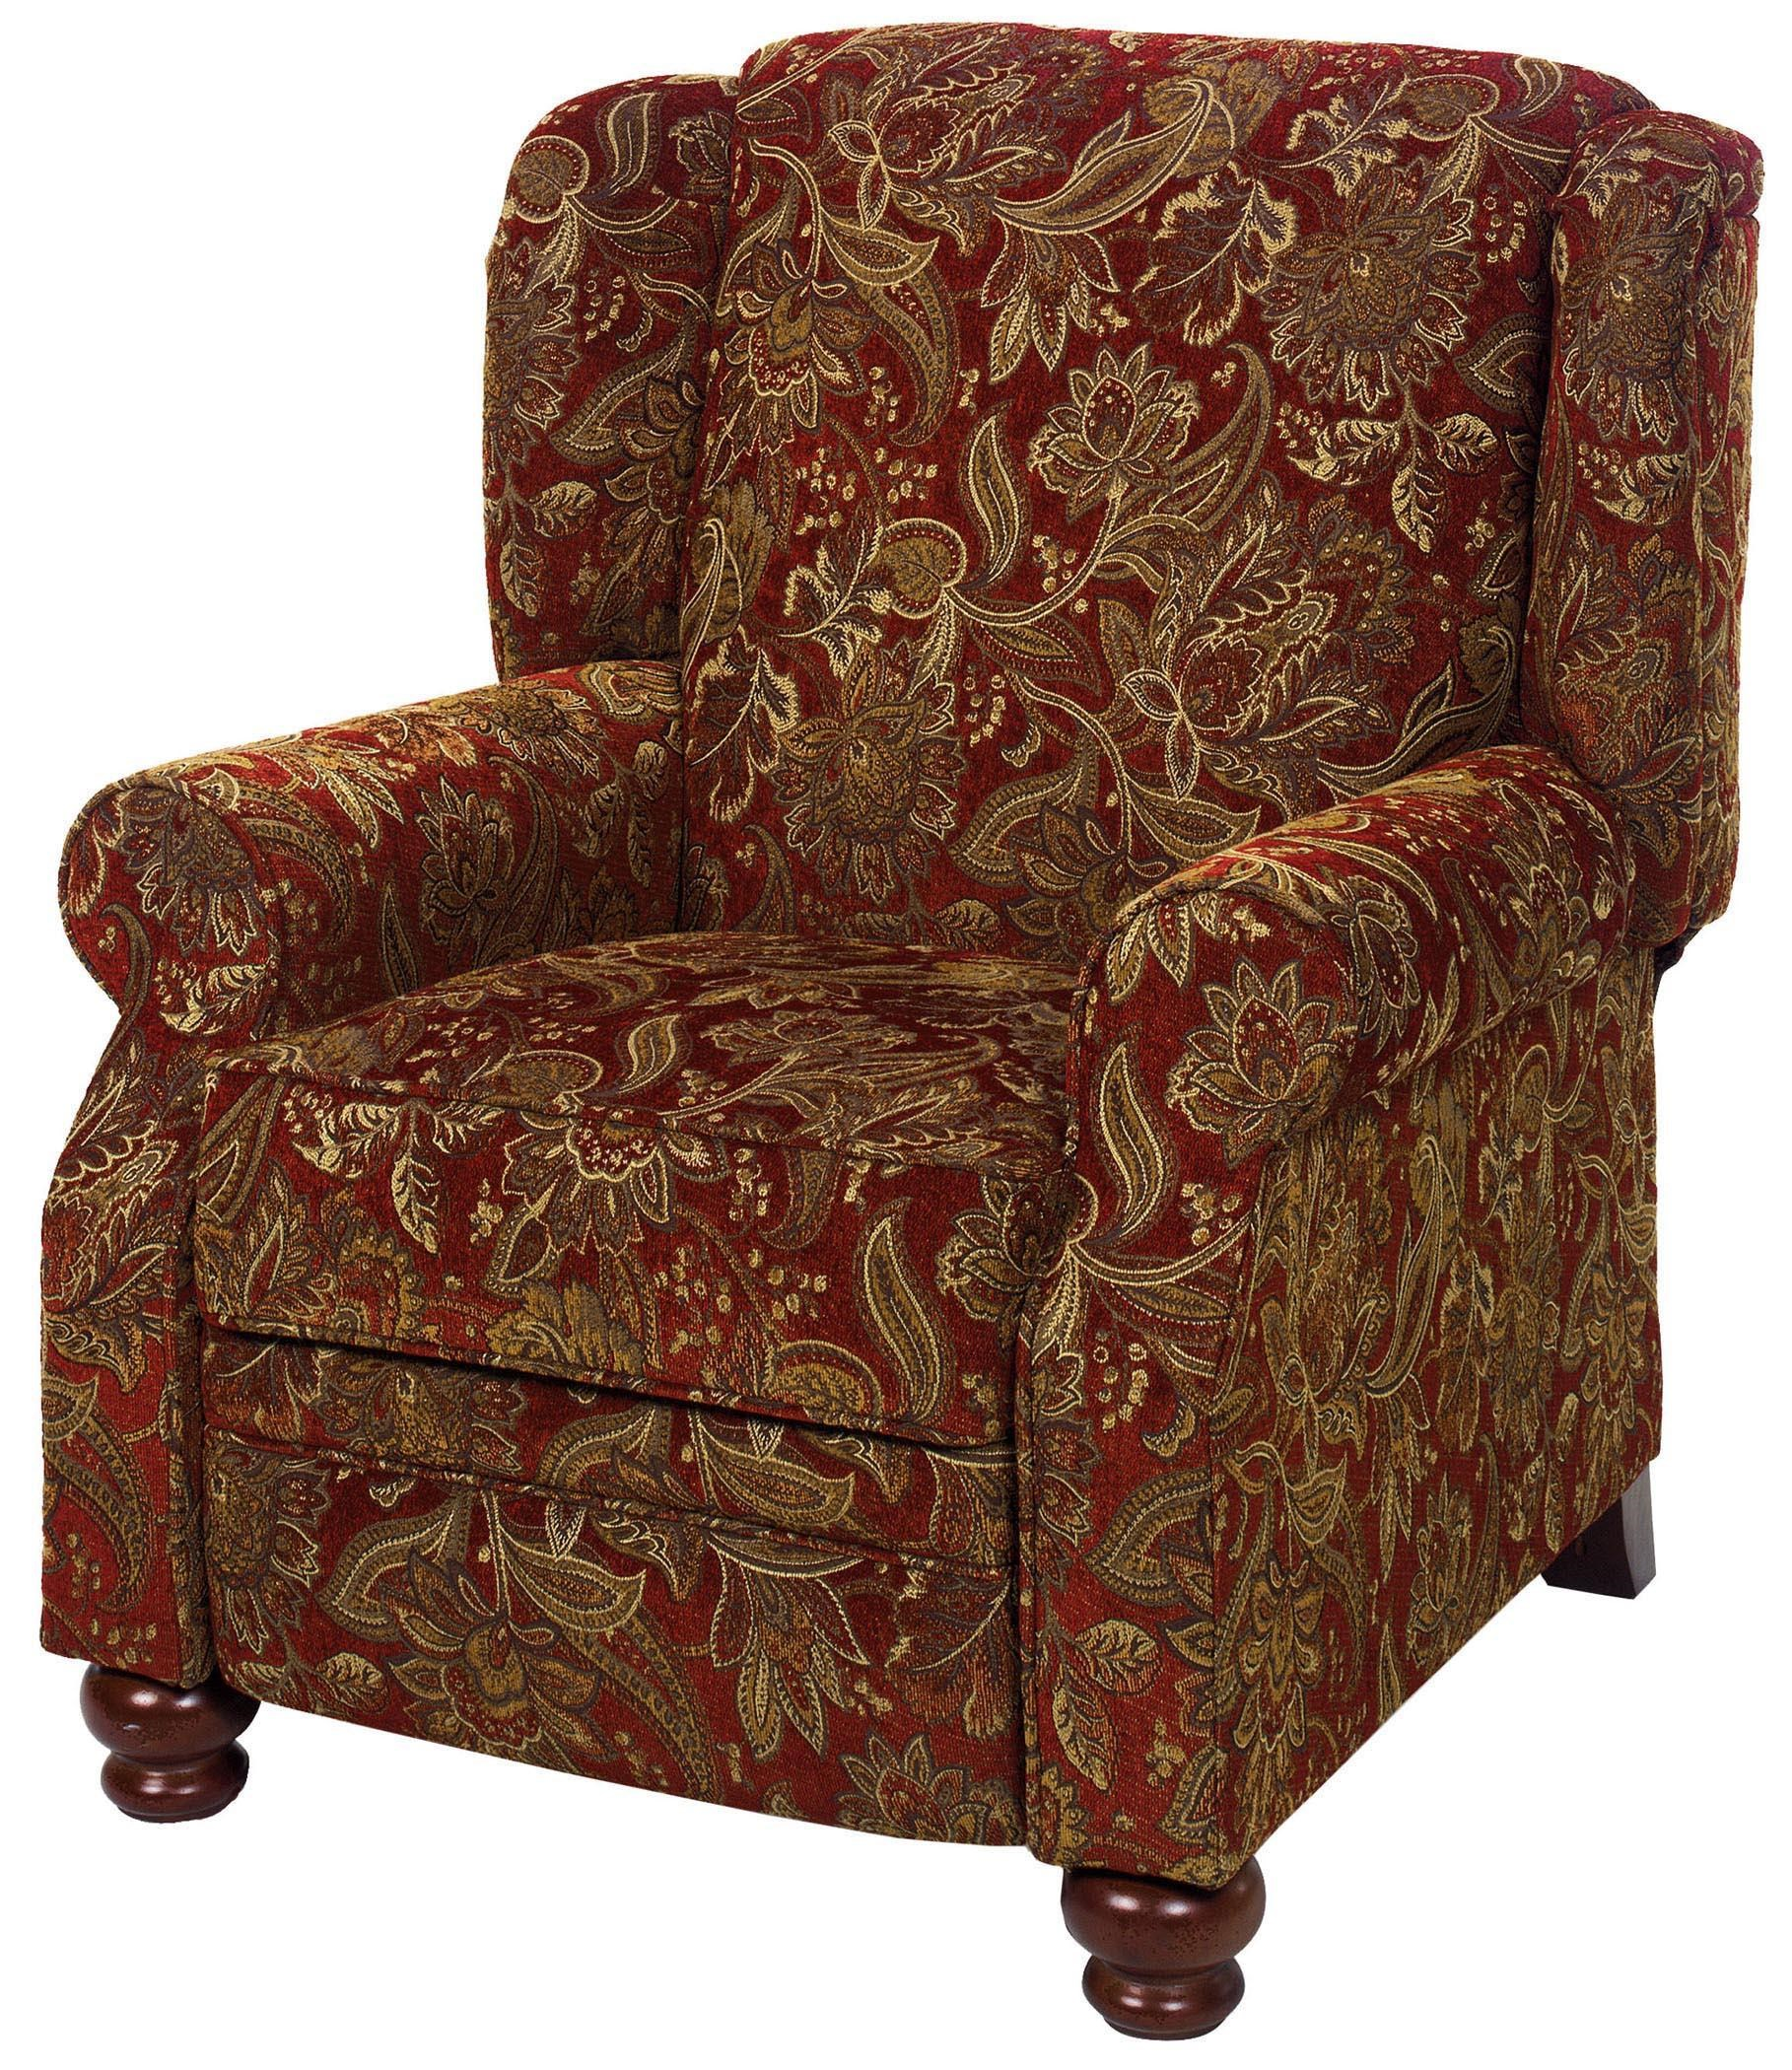 Jackson Furniture Belmont Traditional High Leg Recliner With Turned Wood  Feet   Adcock Furniture   High Leg Recliners